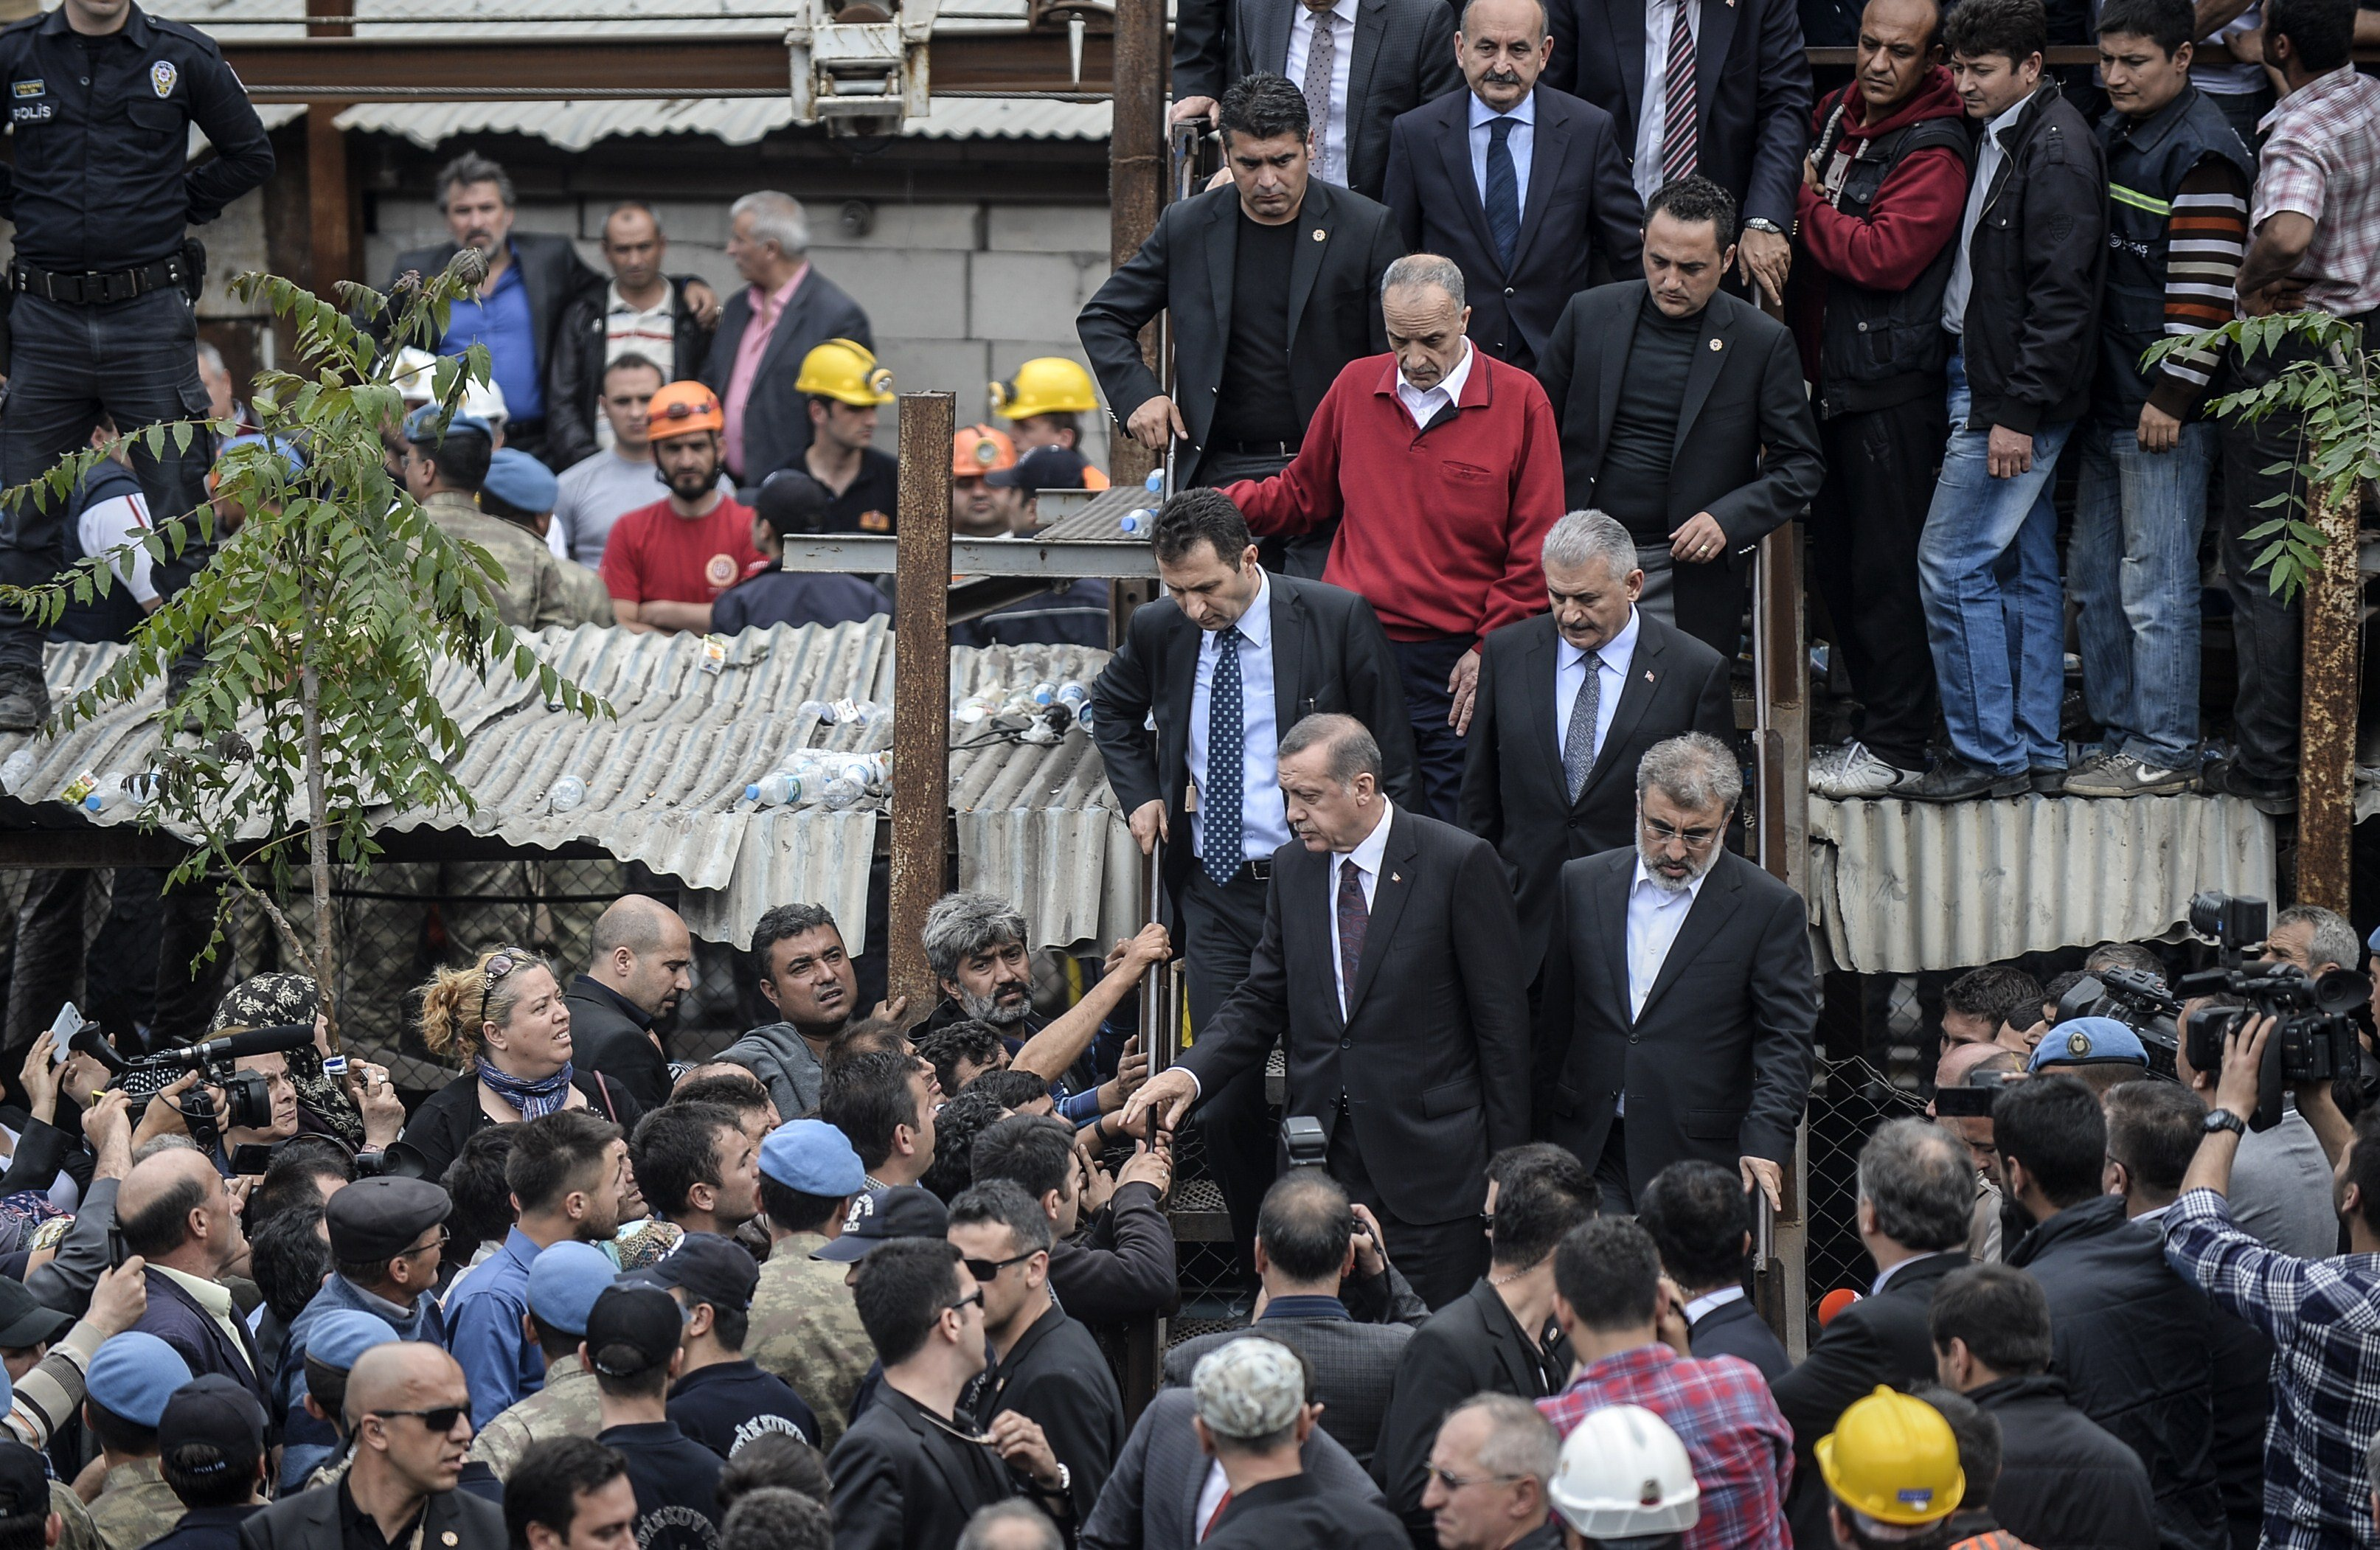 Turkish prime minister Recep Tayyip Erdogan visits the site where 120 workers were believed to remain trapped in a mine after a deadly explosion that claimed the lives of well over 200 people on May 14, 2014 in a coal mine of the western Turkish province of Manisa.